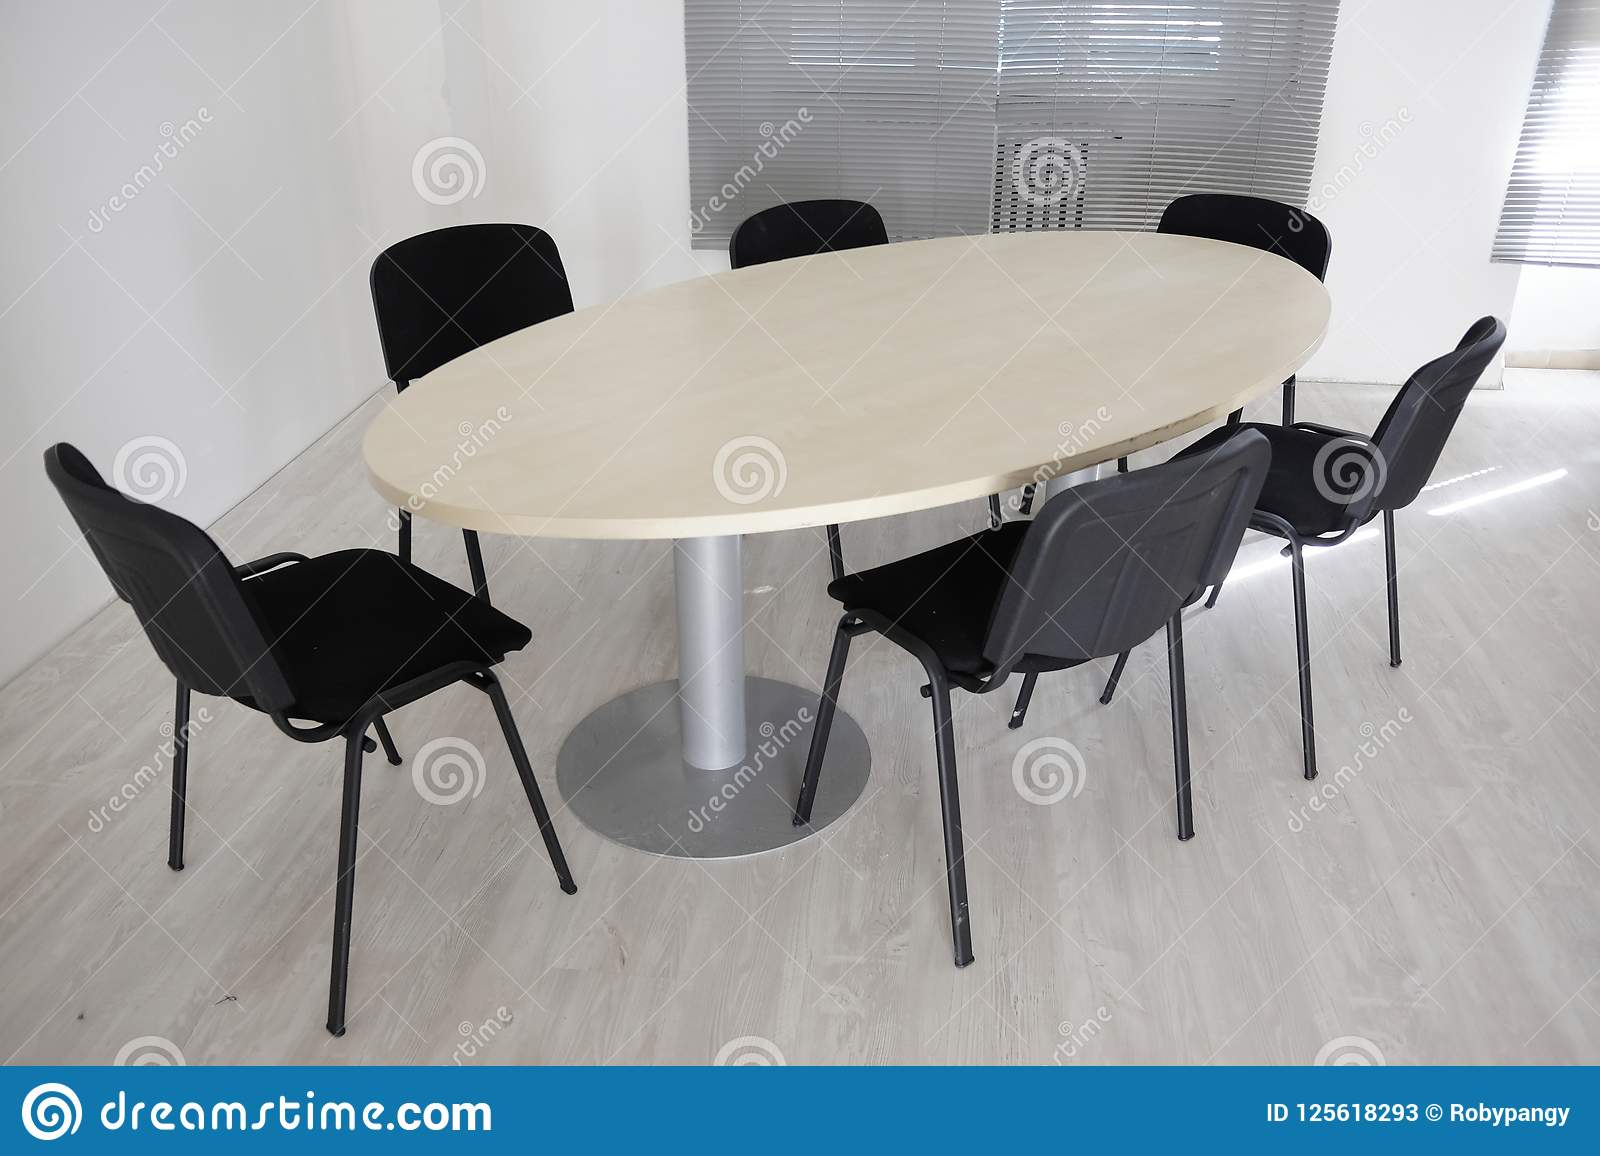 Picture of: Oval Meeting Table Stock Image Image Of Office Business 125618293